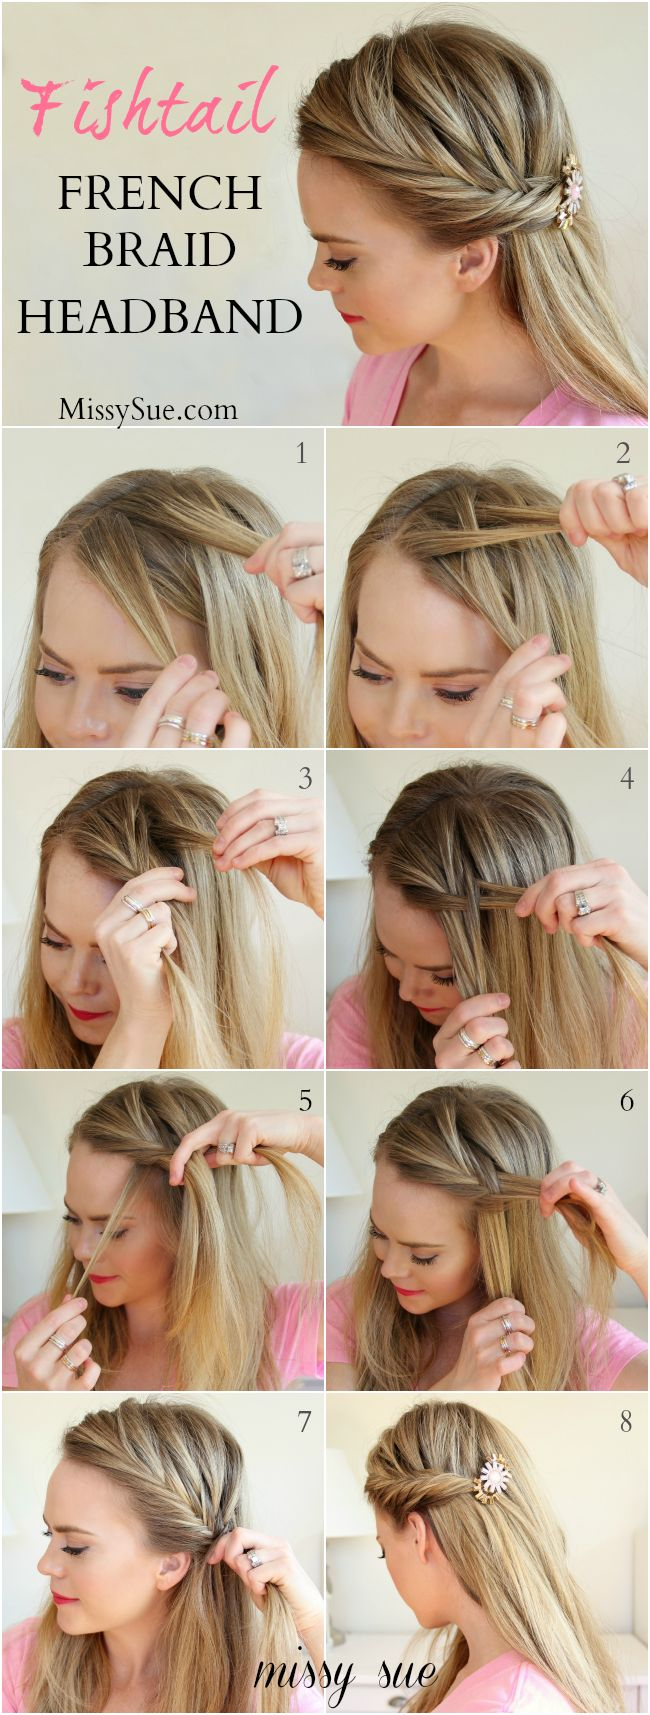 Fishtail French Braid Headband Missy Sue Blog